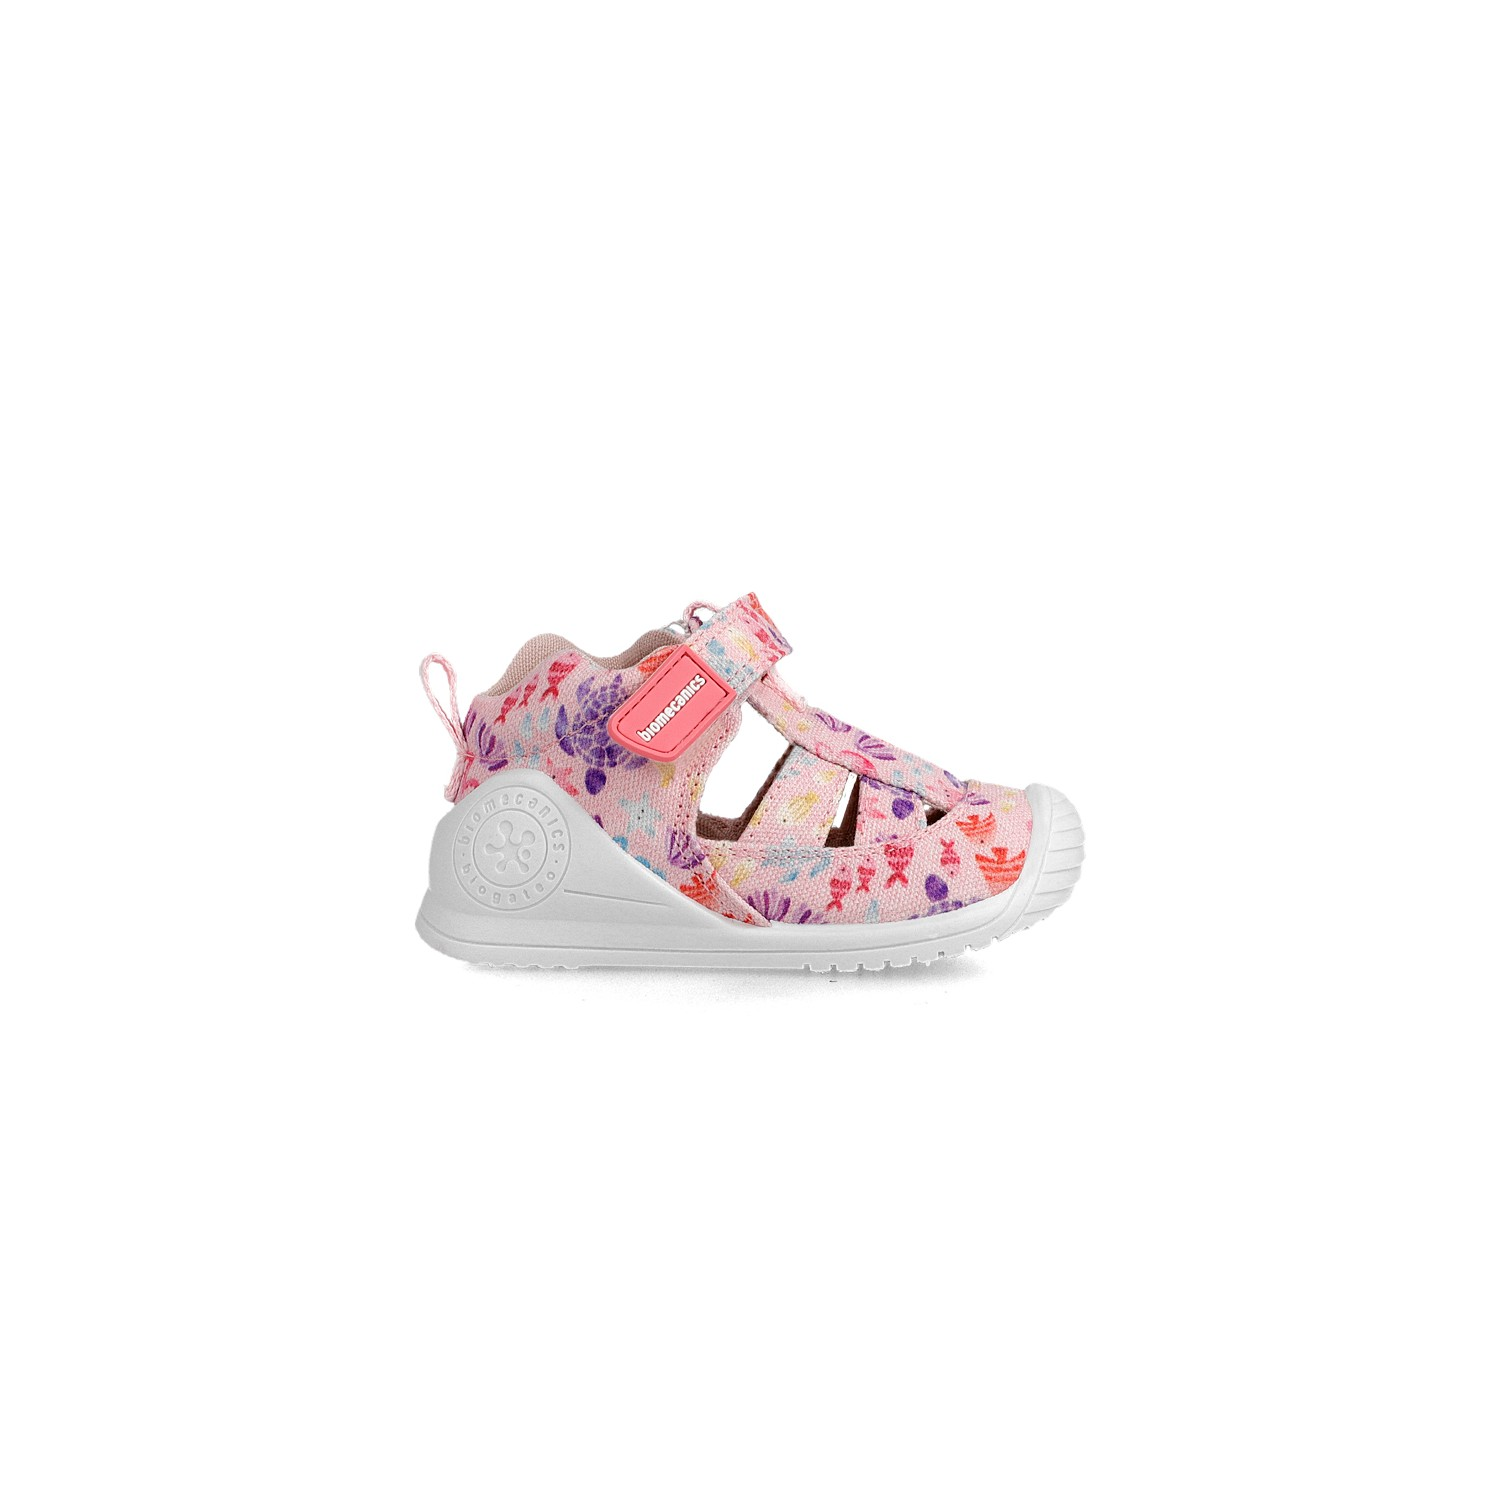 Canvas sneakers for baby Irina